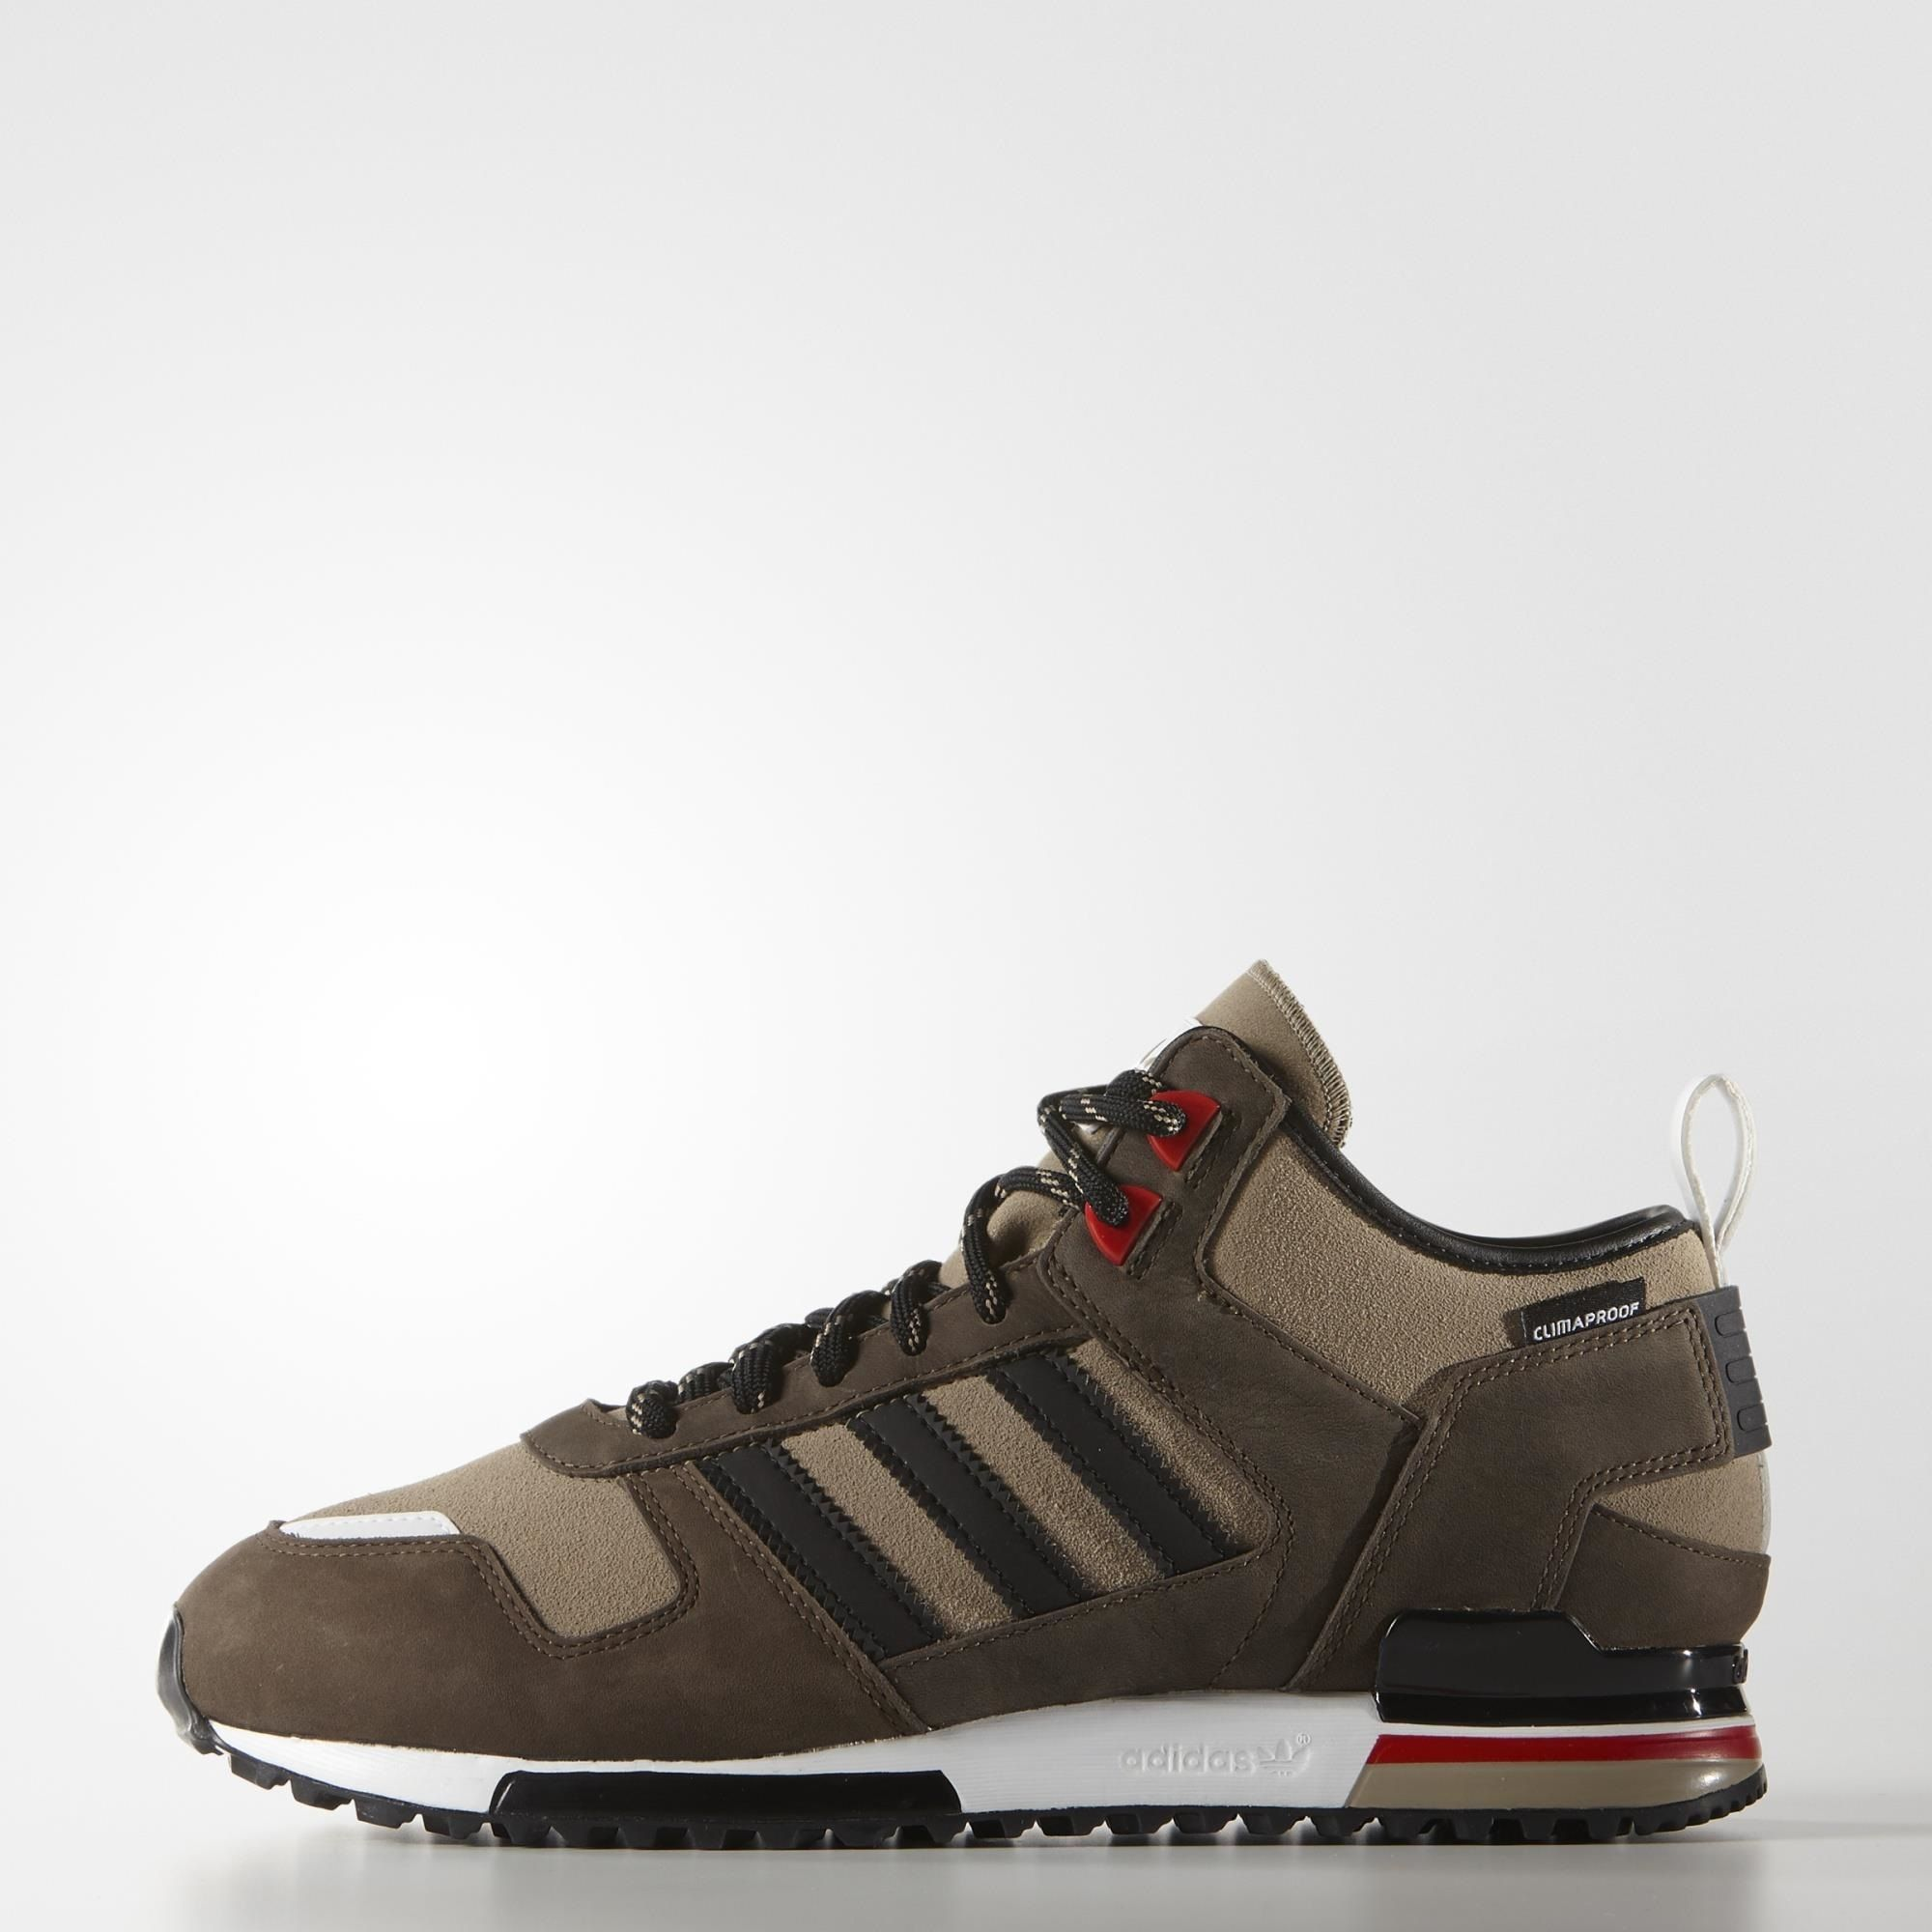 adidas zx 700 winter hi